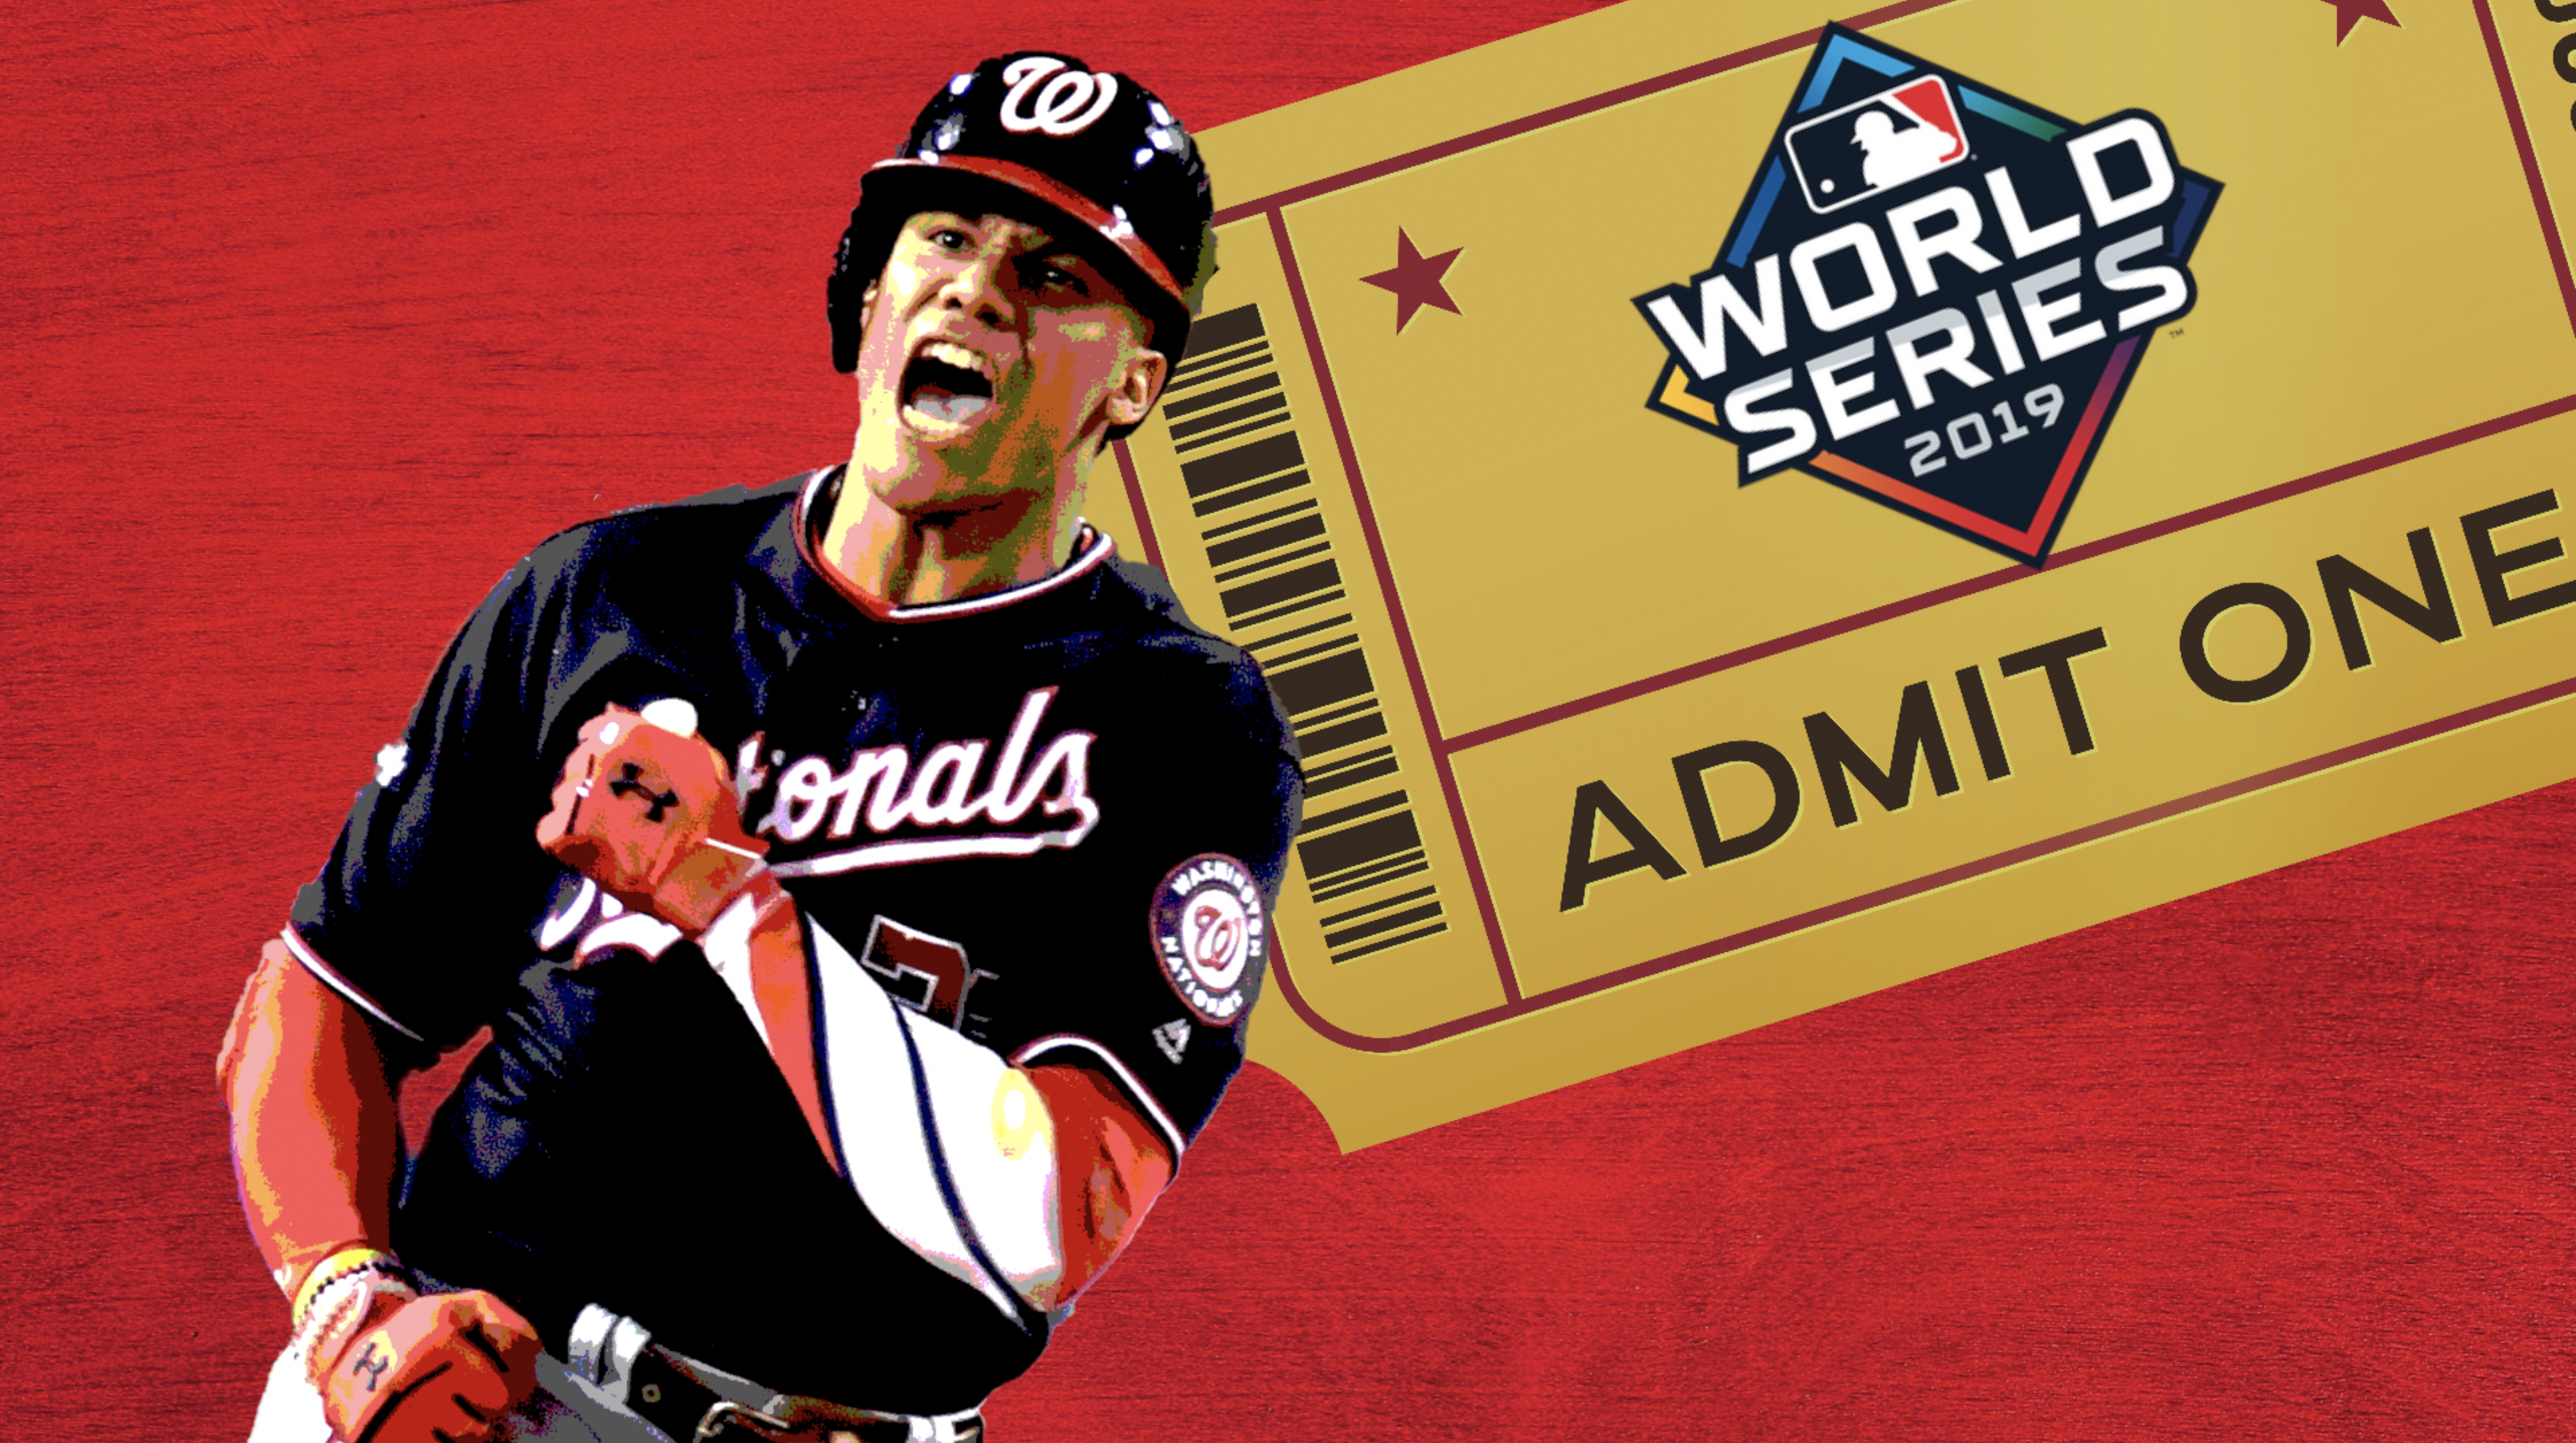 Check World Series Tickets Authenticity